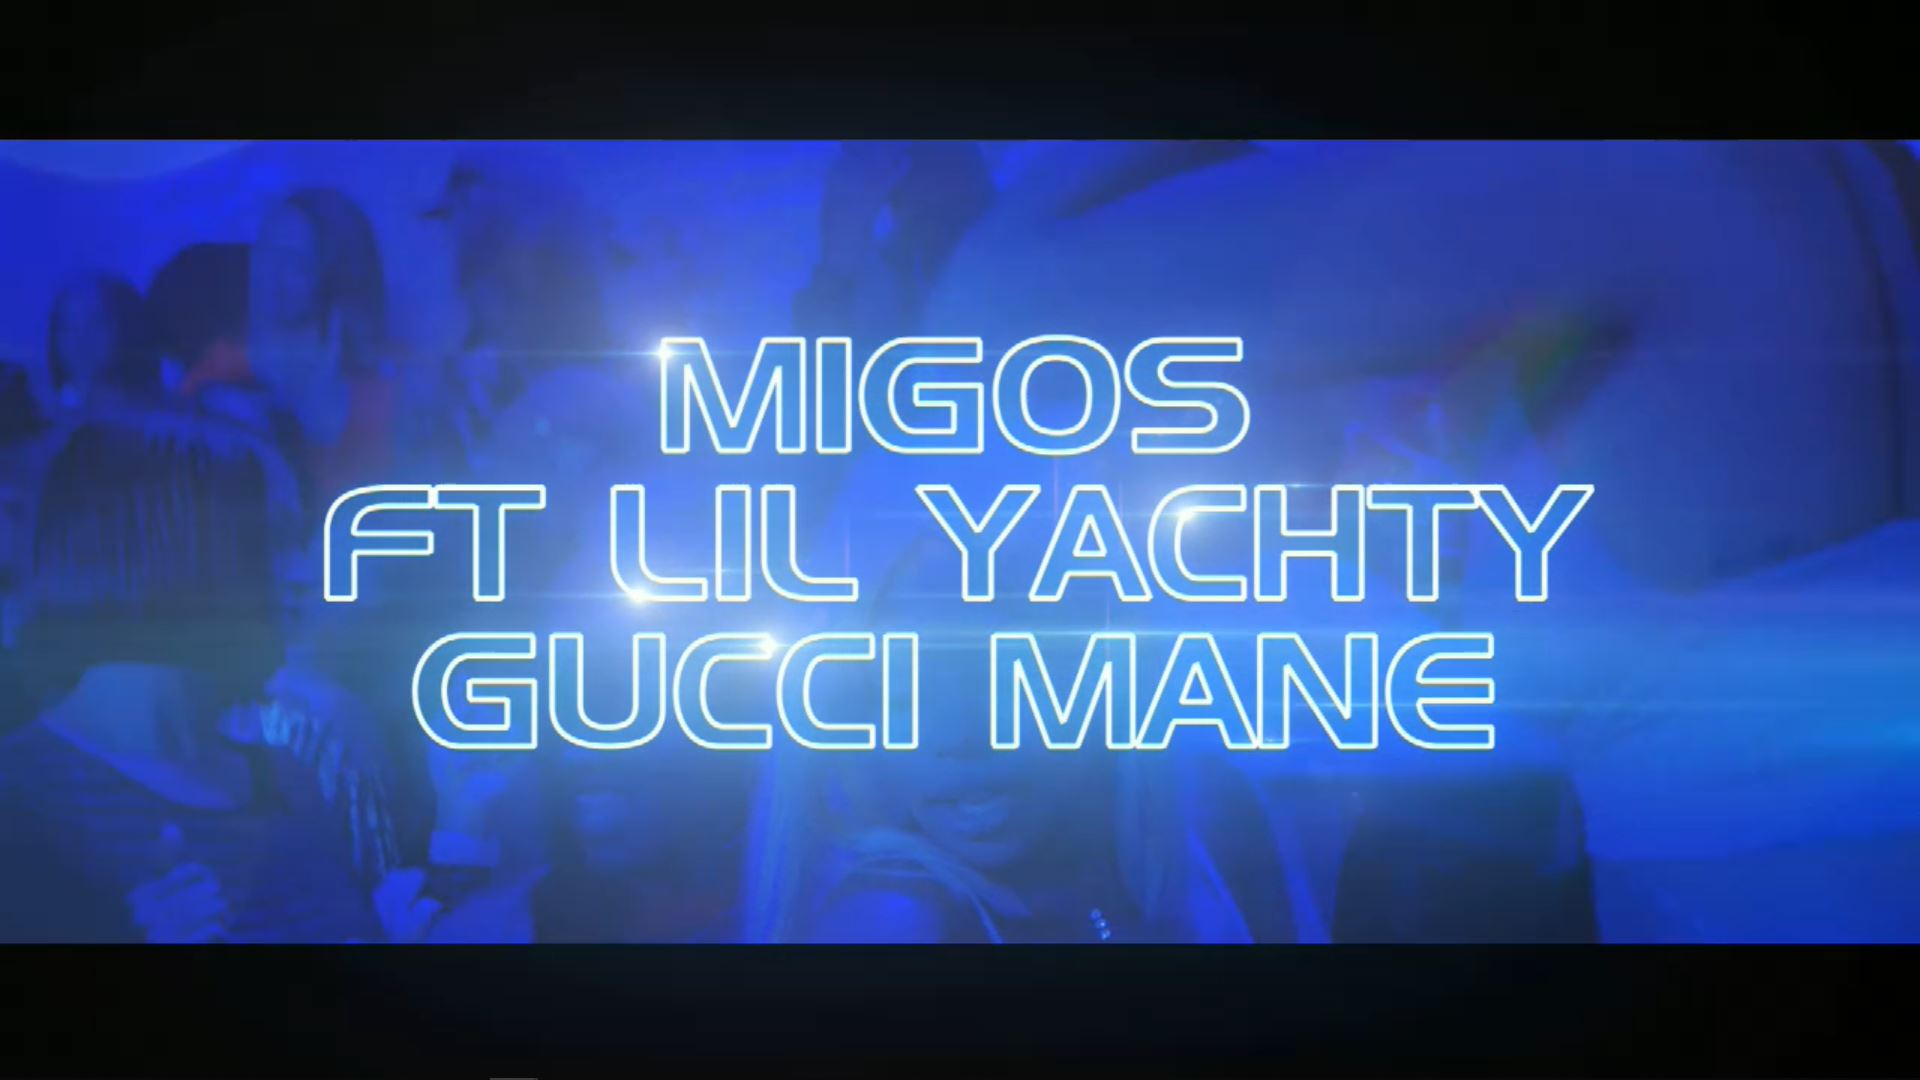 Migos - Intro ft Lil Yachty Gucci Mane